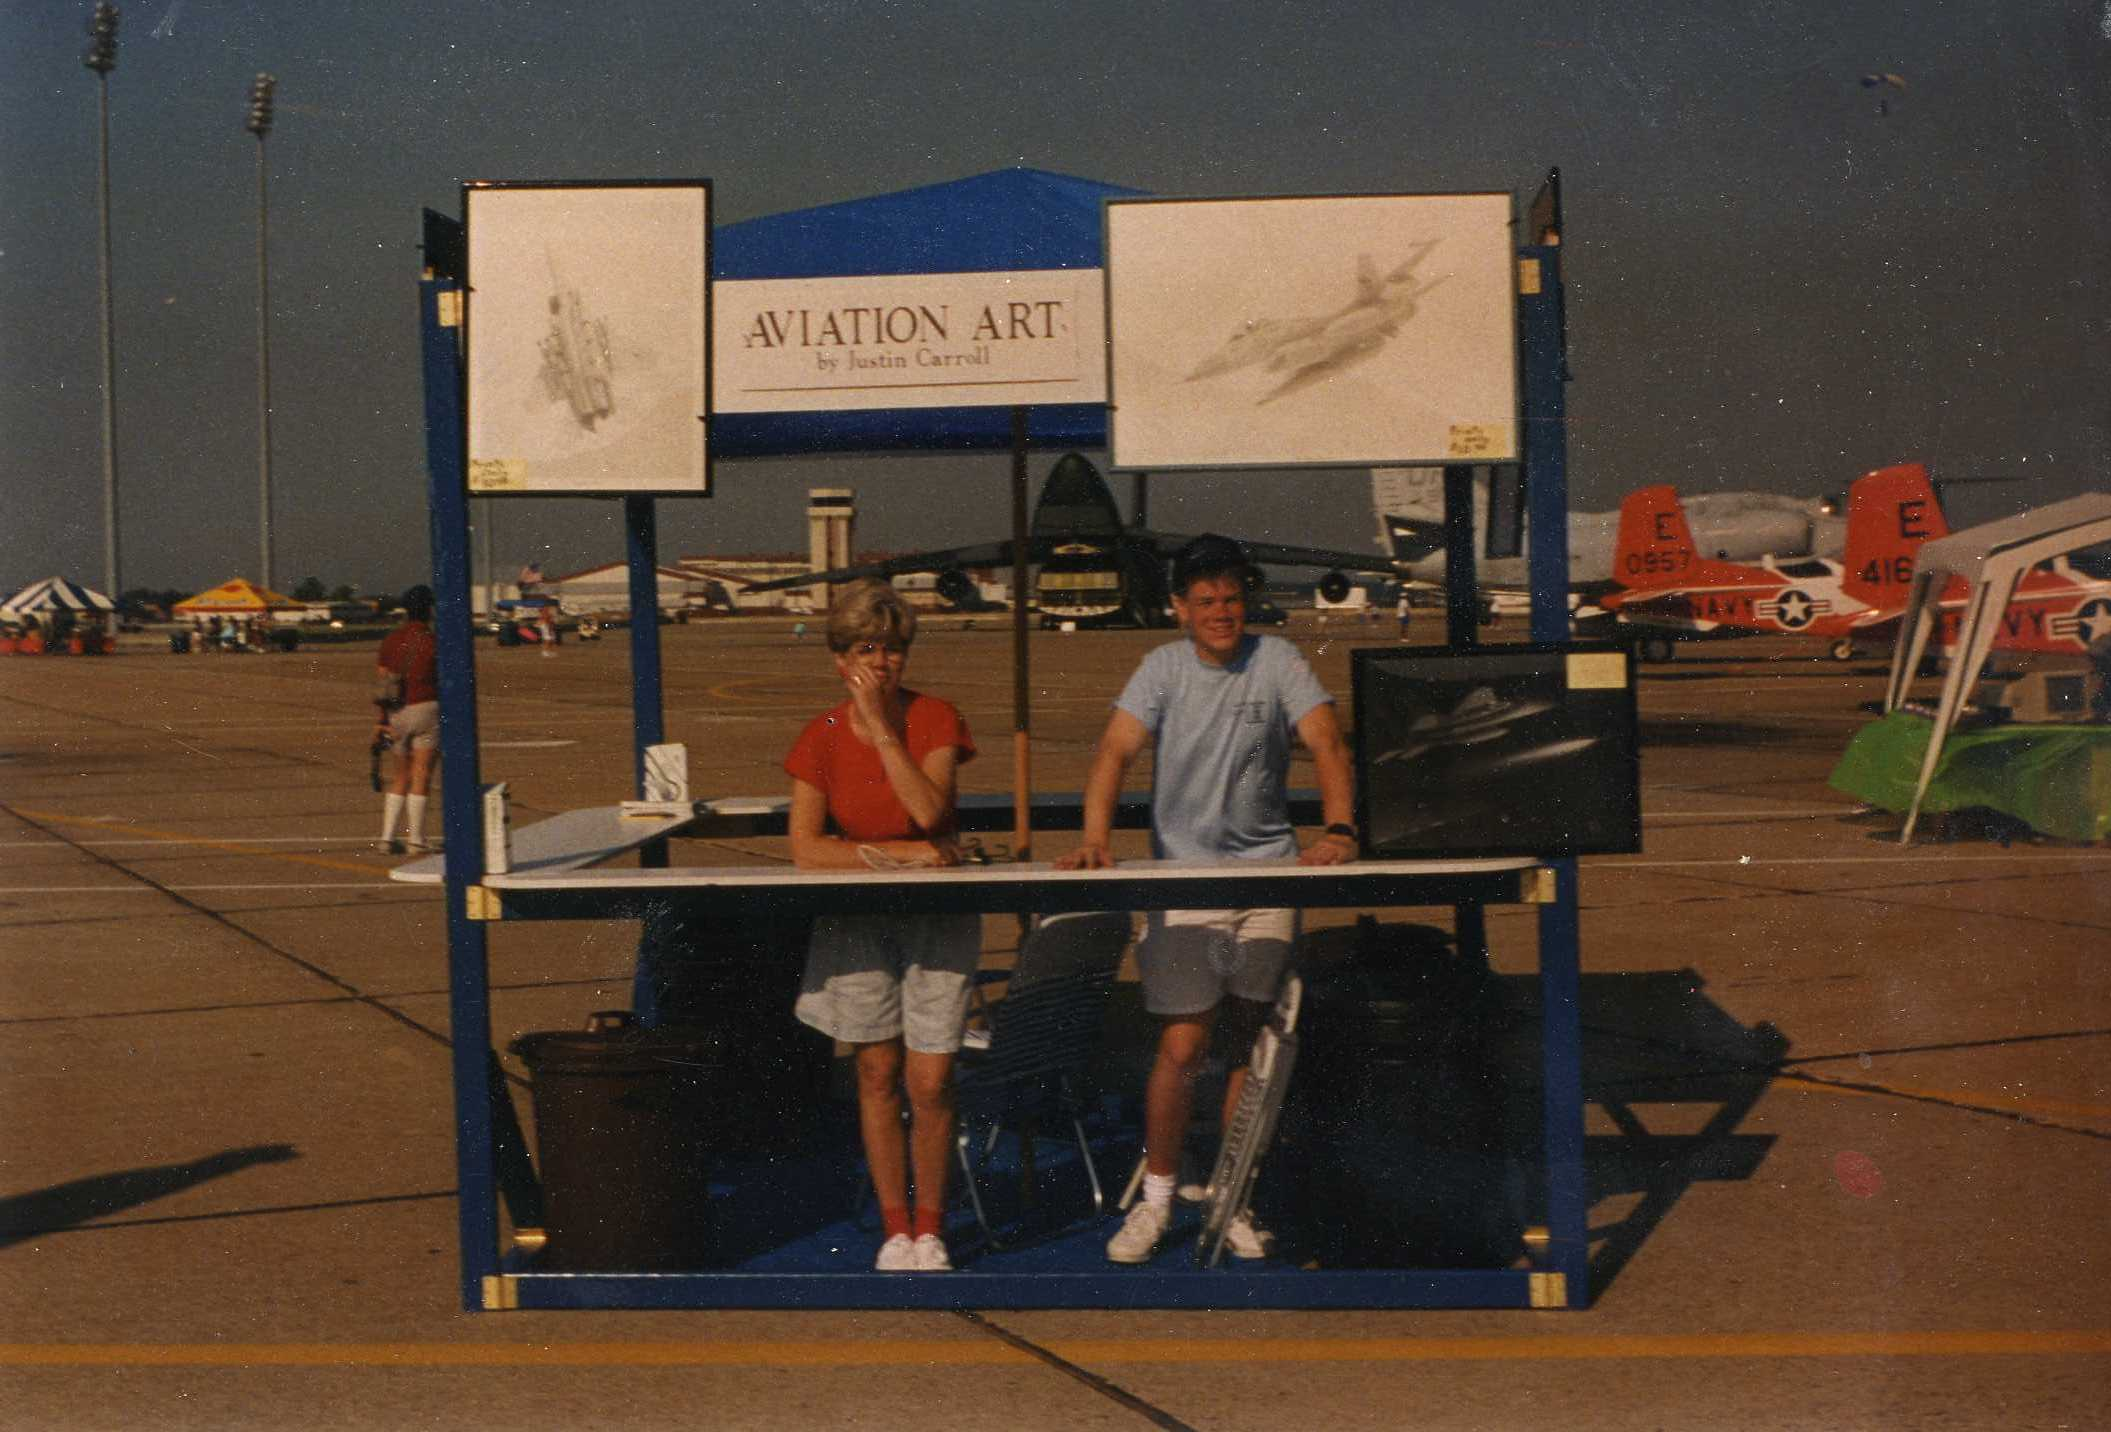 Langley AFB Airshow Booth